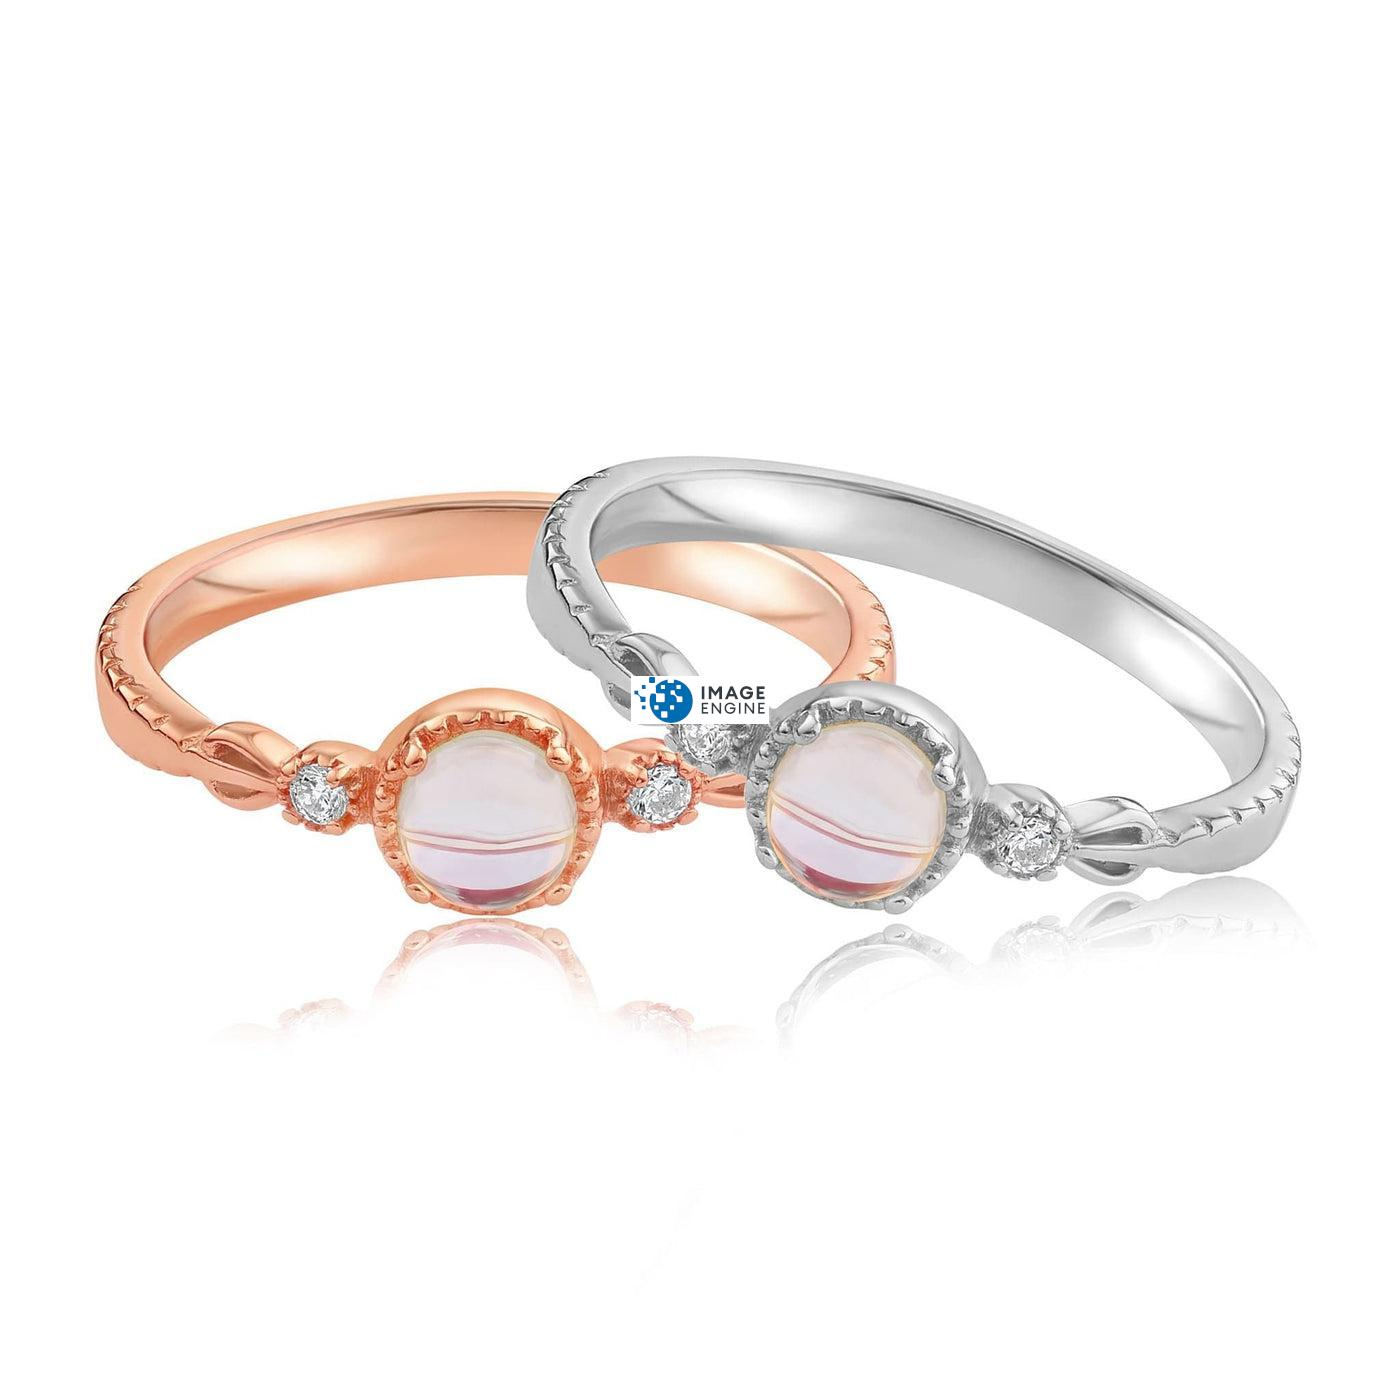 Mystic Moonstone Mood Ring - Front View Side by Side - 18K Rose Gold Vermeil and 925 Sterling Silver